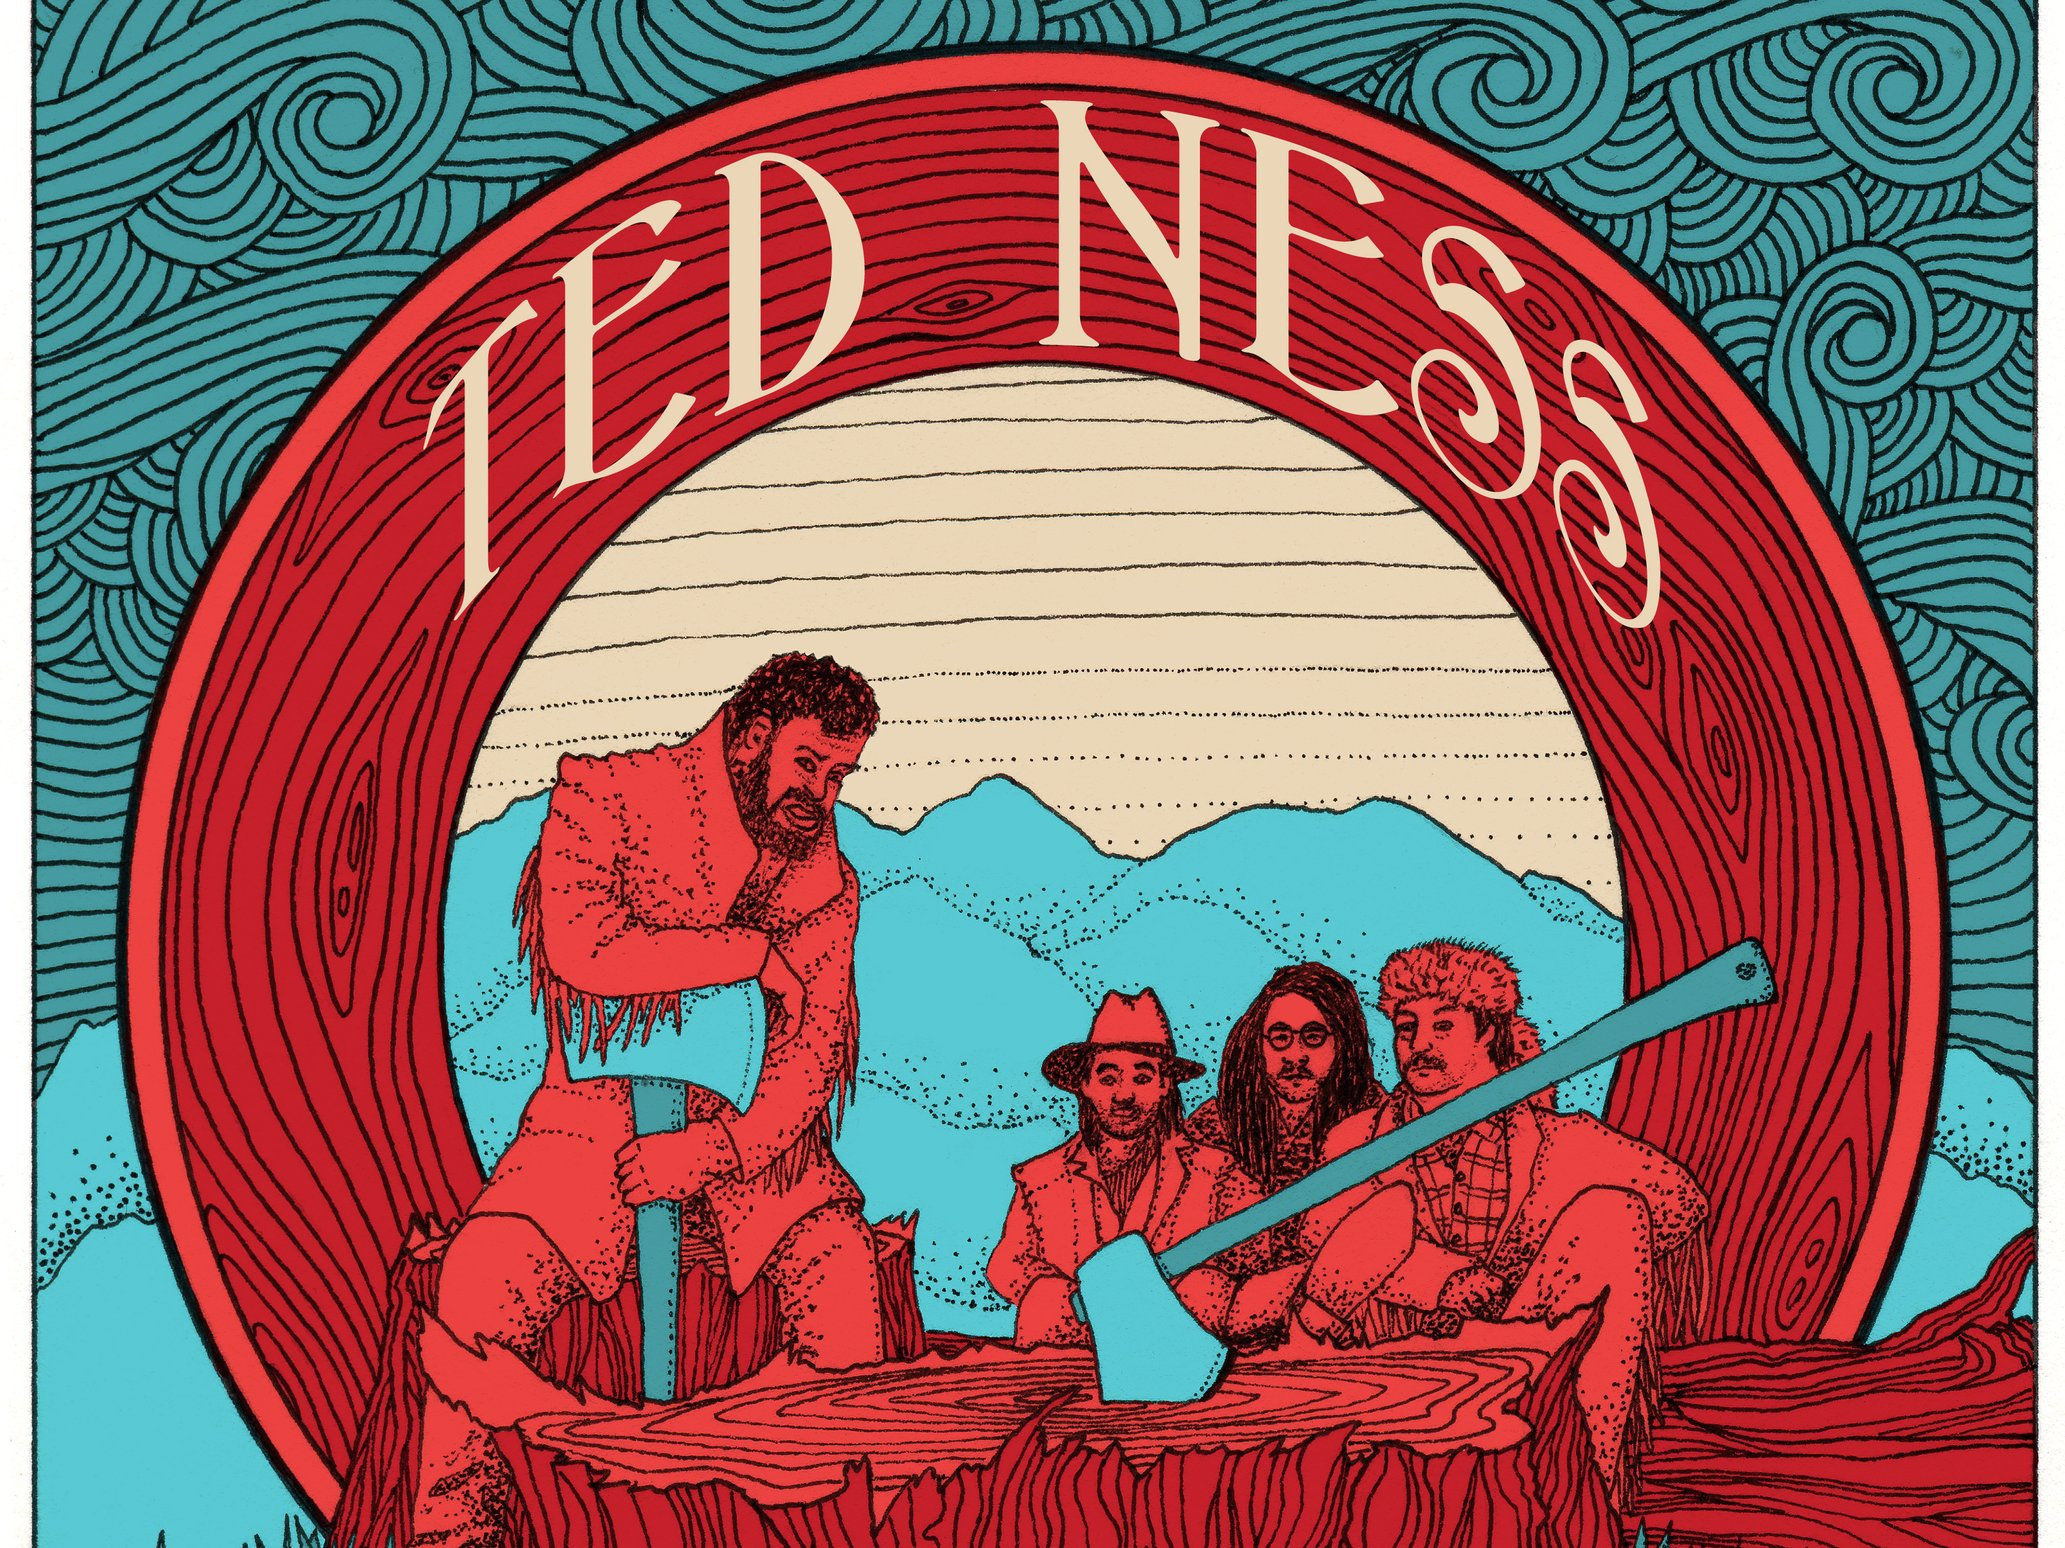 Image for Ted Ness and the Rusty Nails